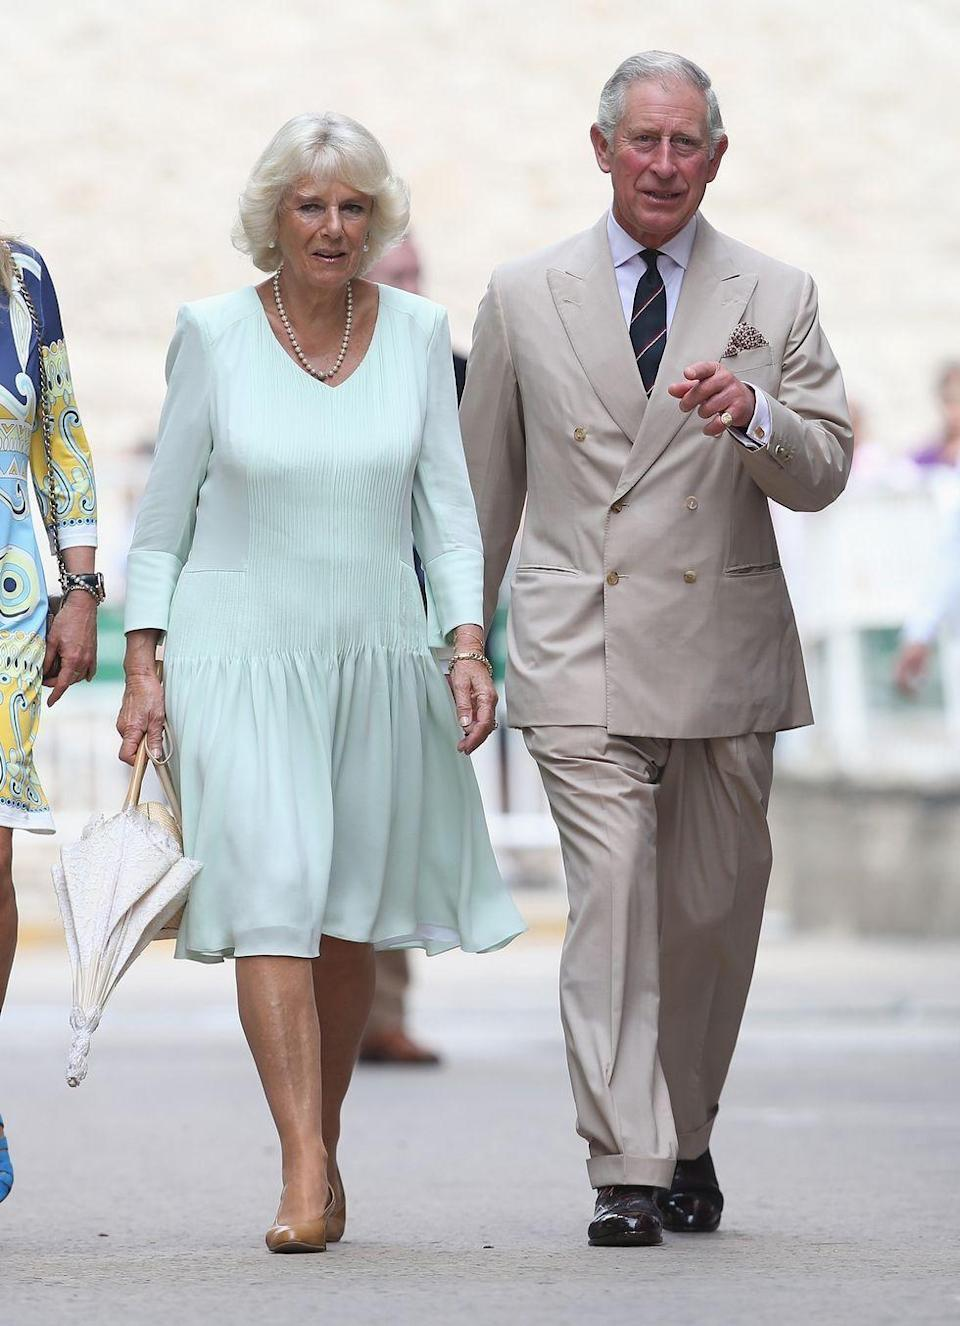 <p>As part of the Royal Tour of Columbia and Mexico, Camilla sported this light blue long-sleeved day dress in Cartagena, Colombia</p>